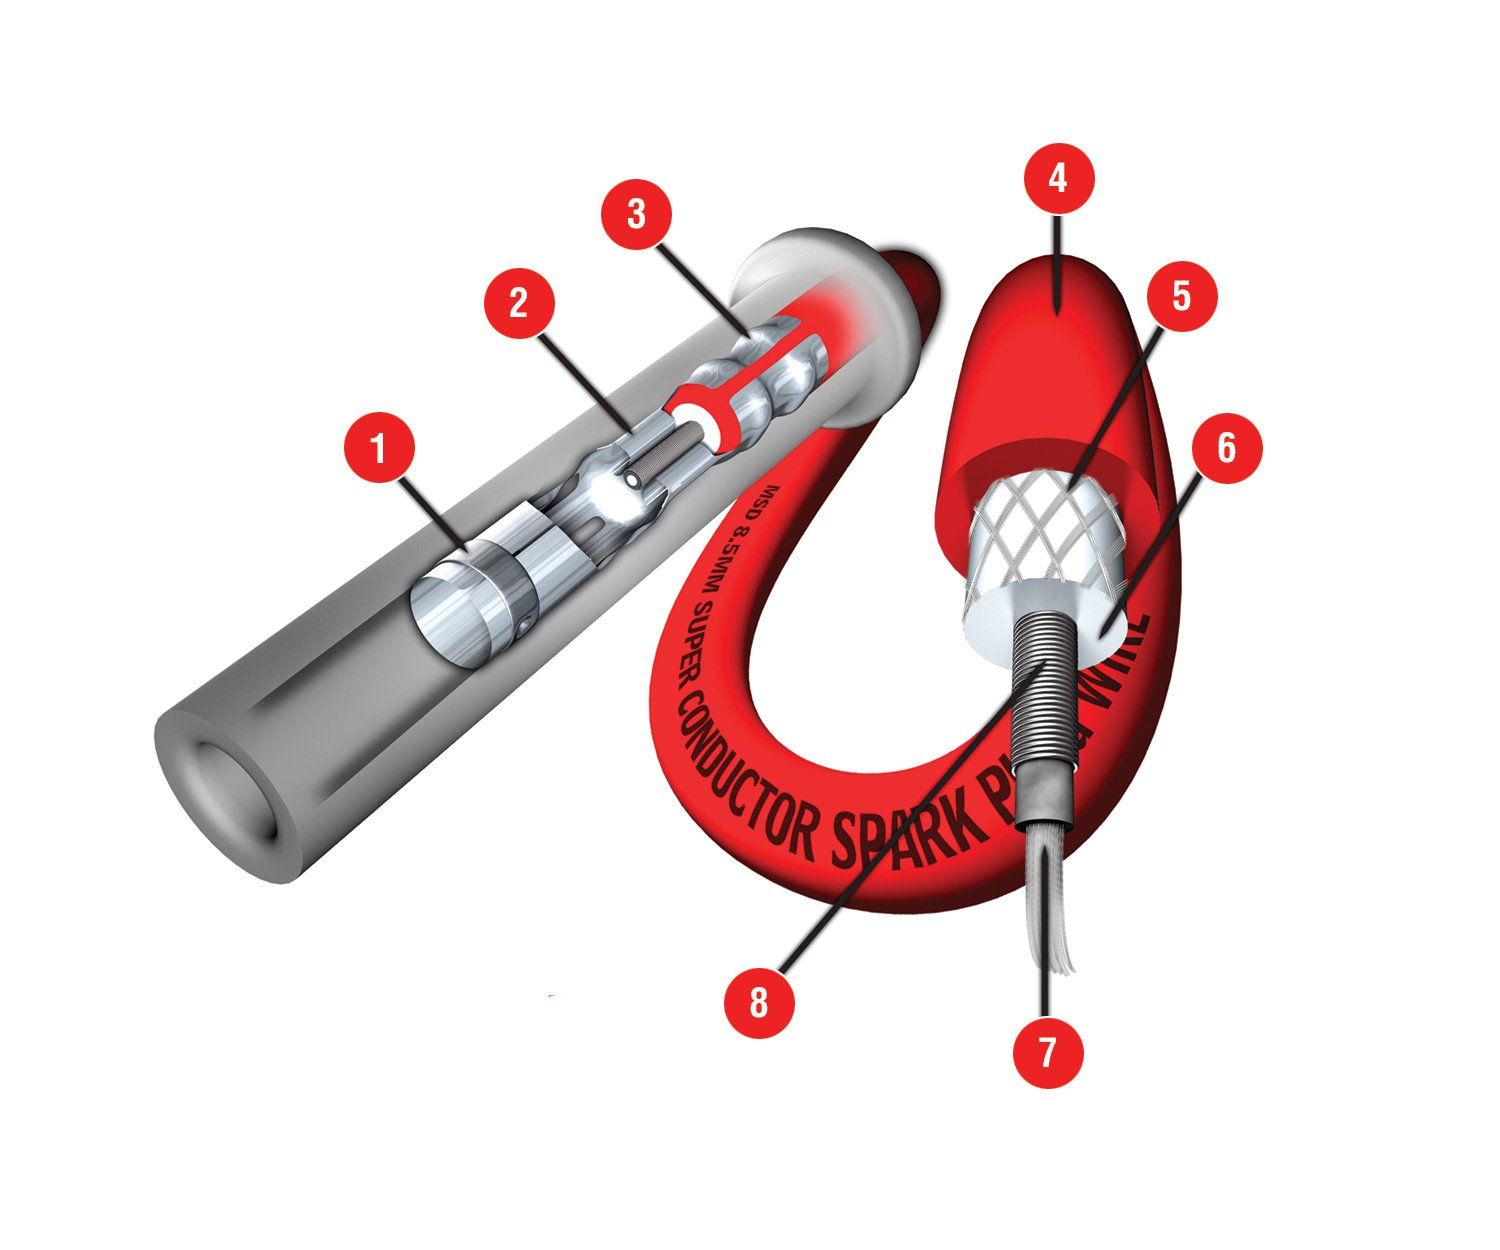 Spark Plug Wires Diagram Image